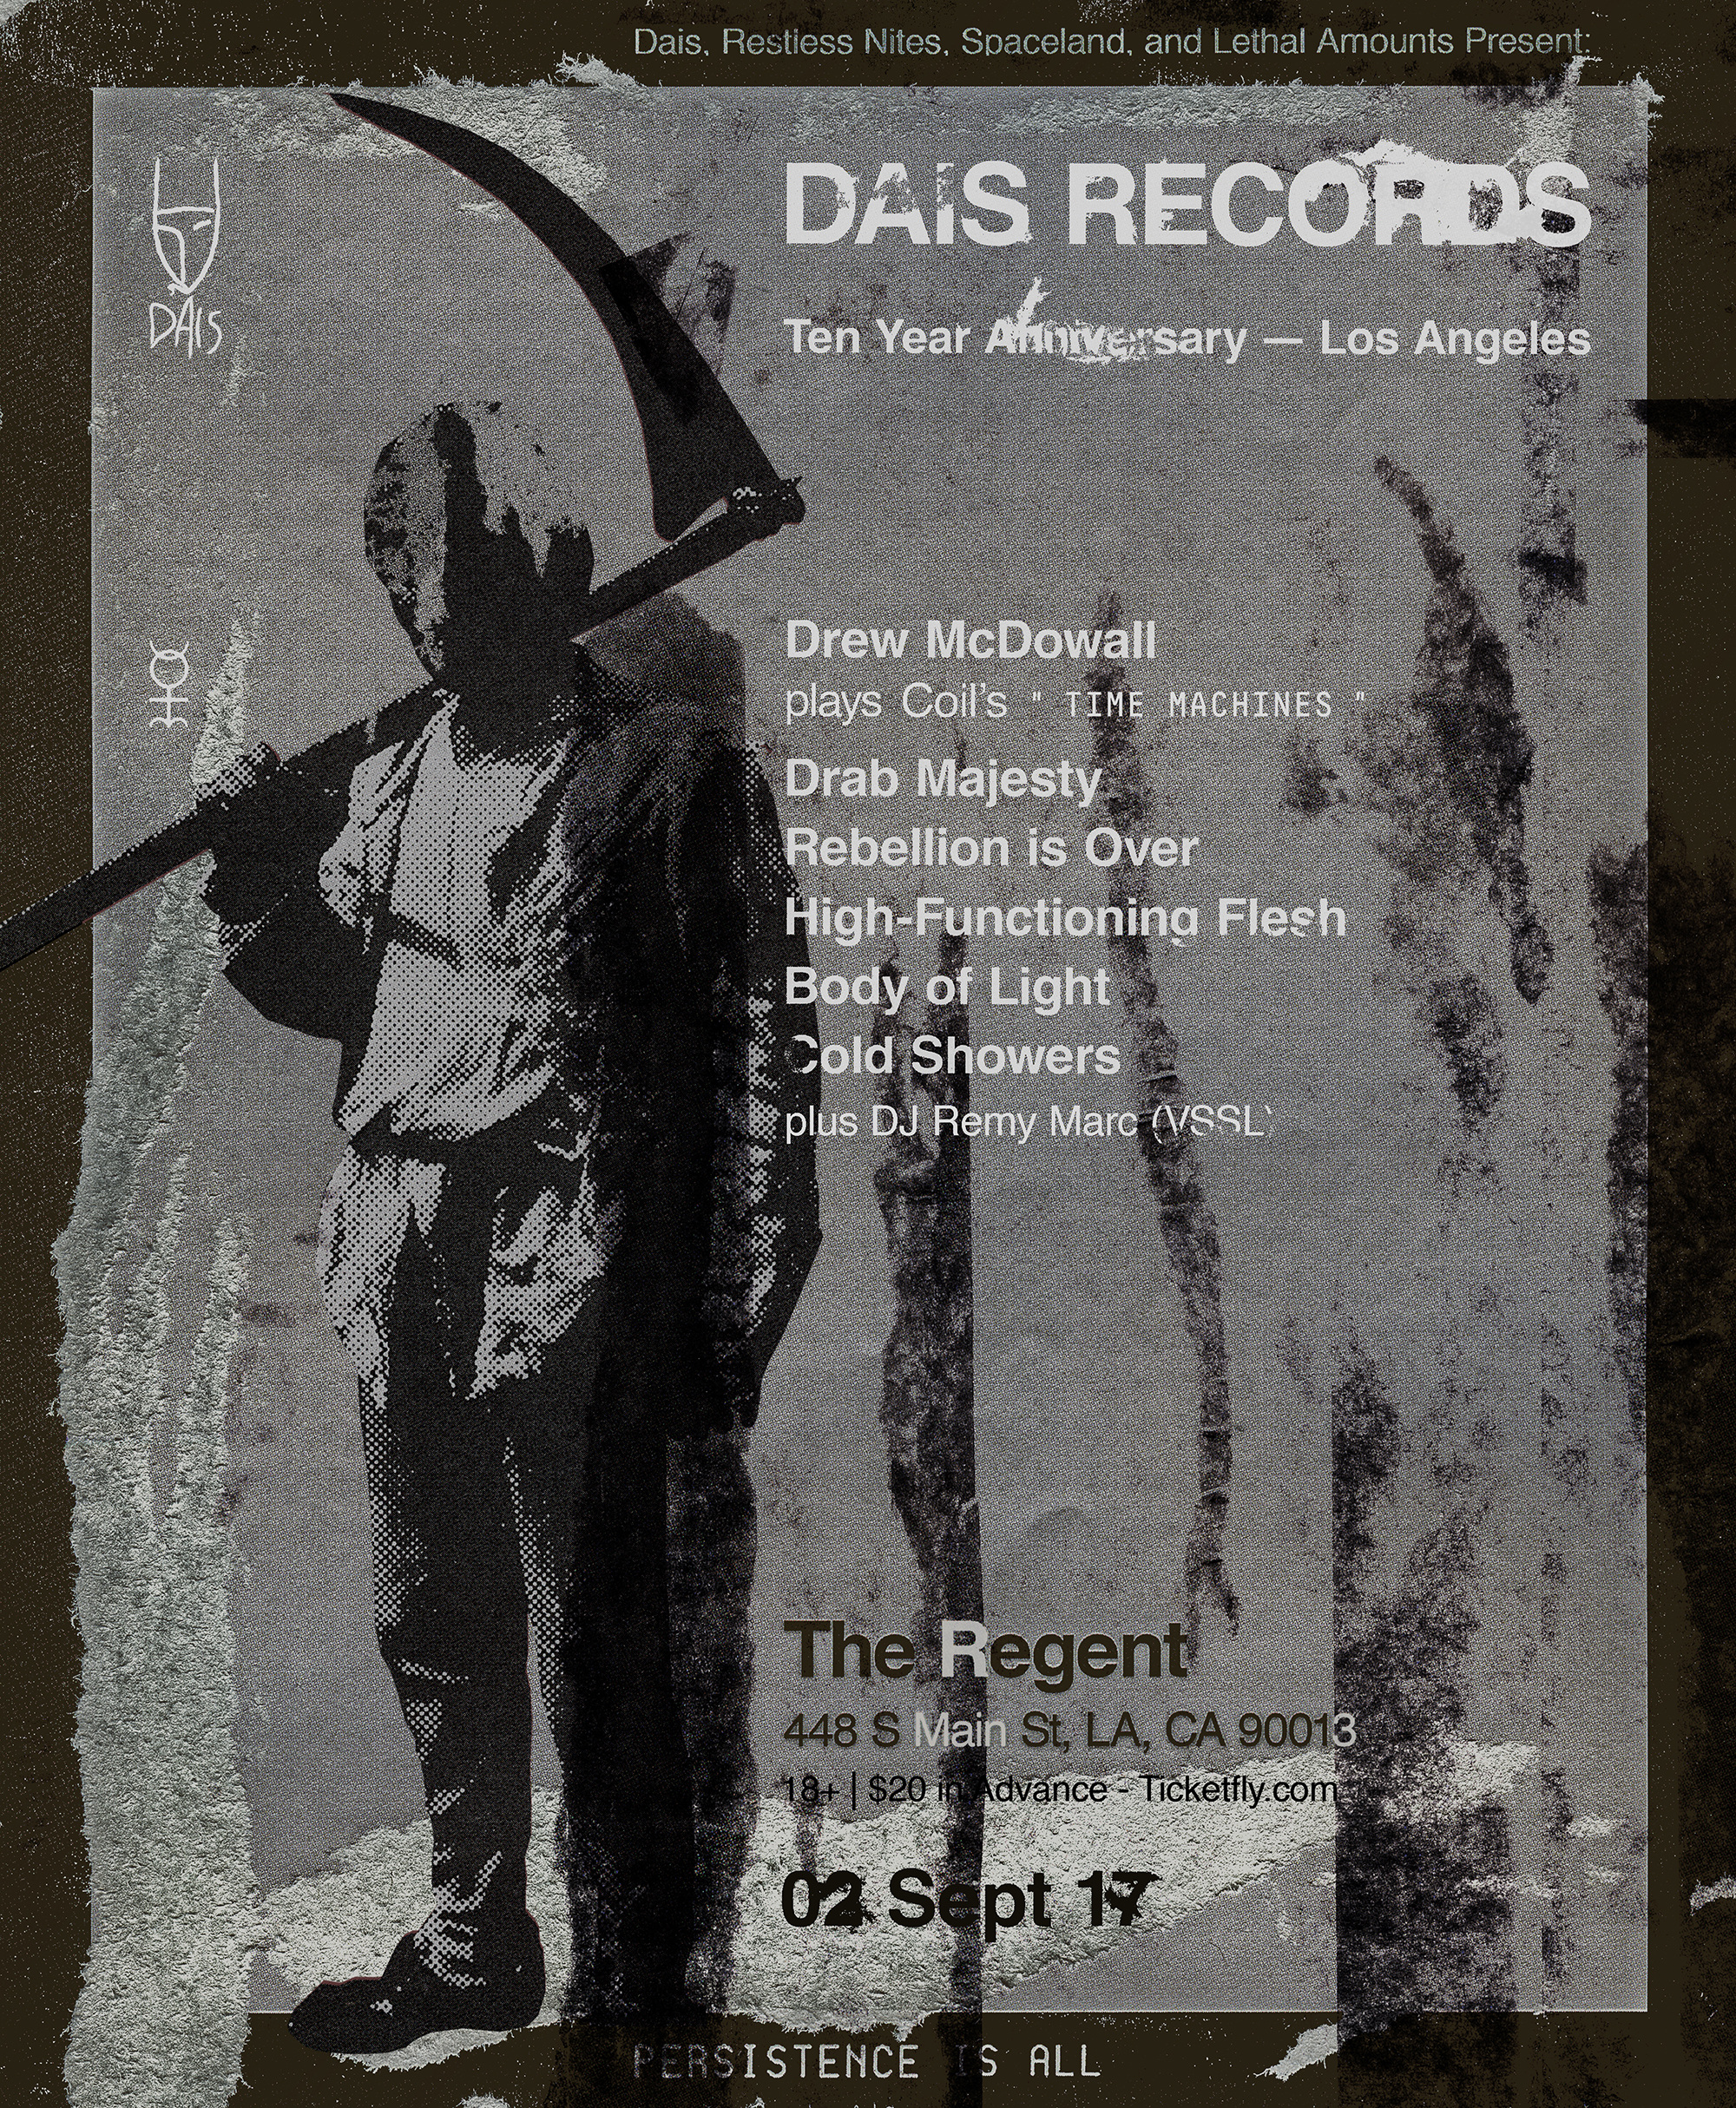 dais-records-10-year---los-angeles---v3---web-proof_2000.jpg